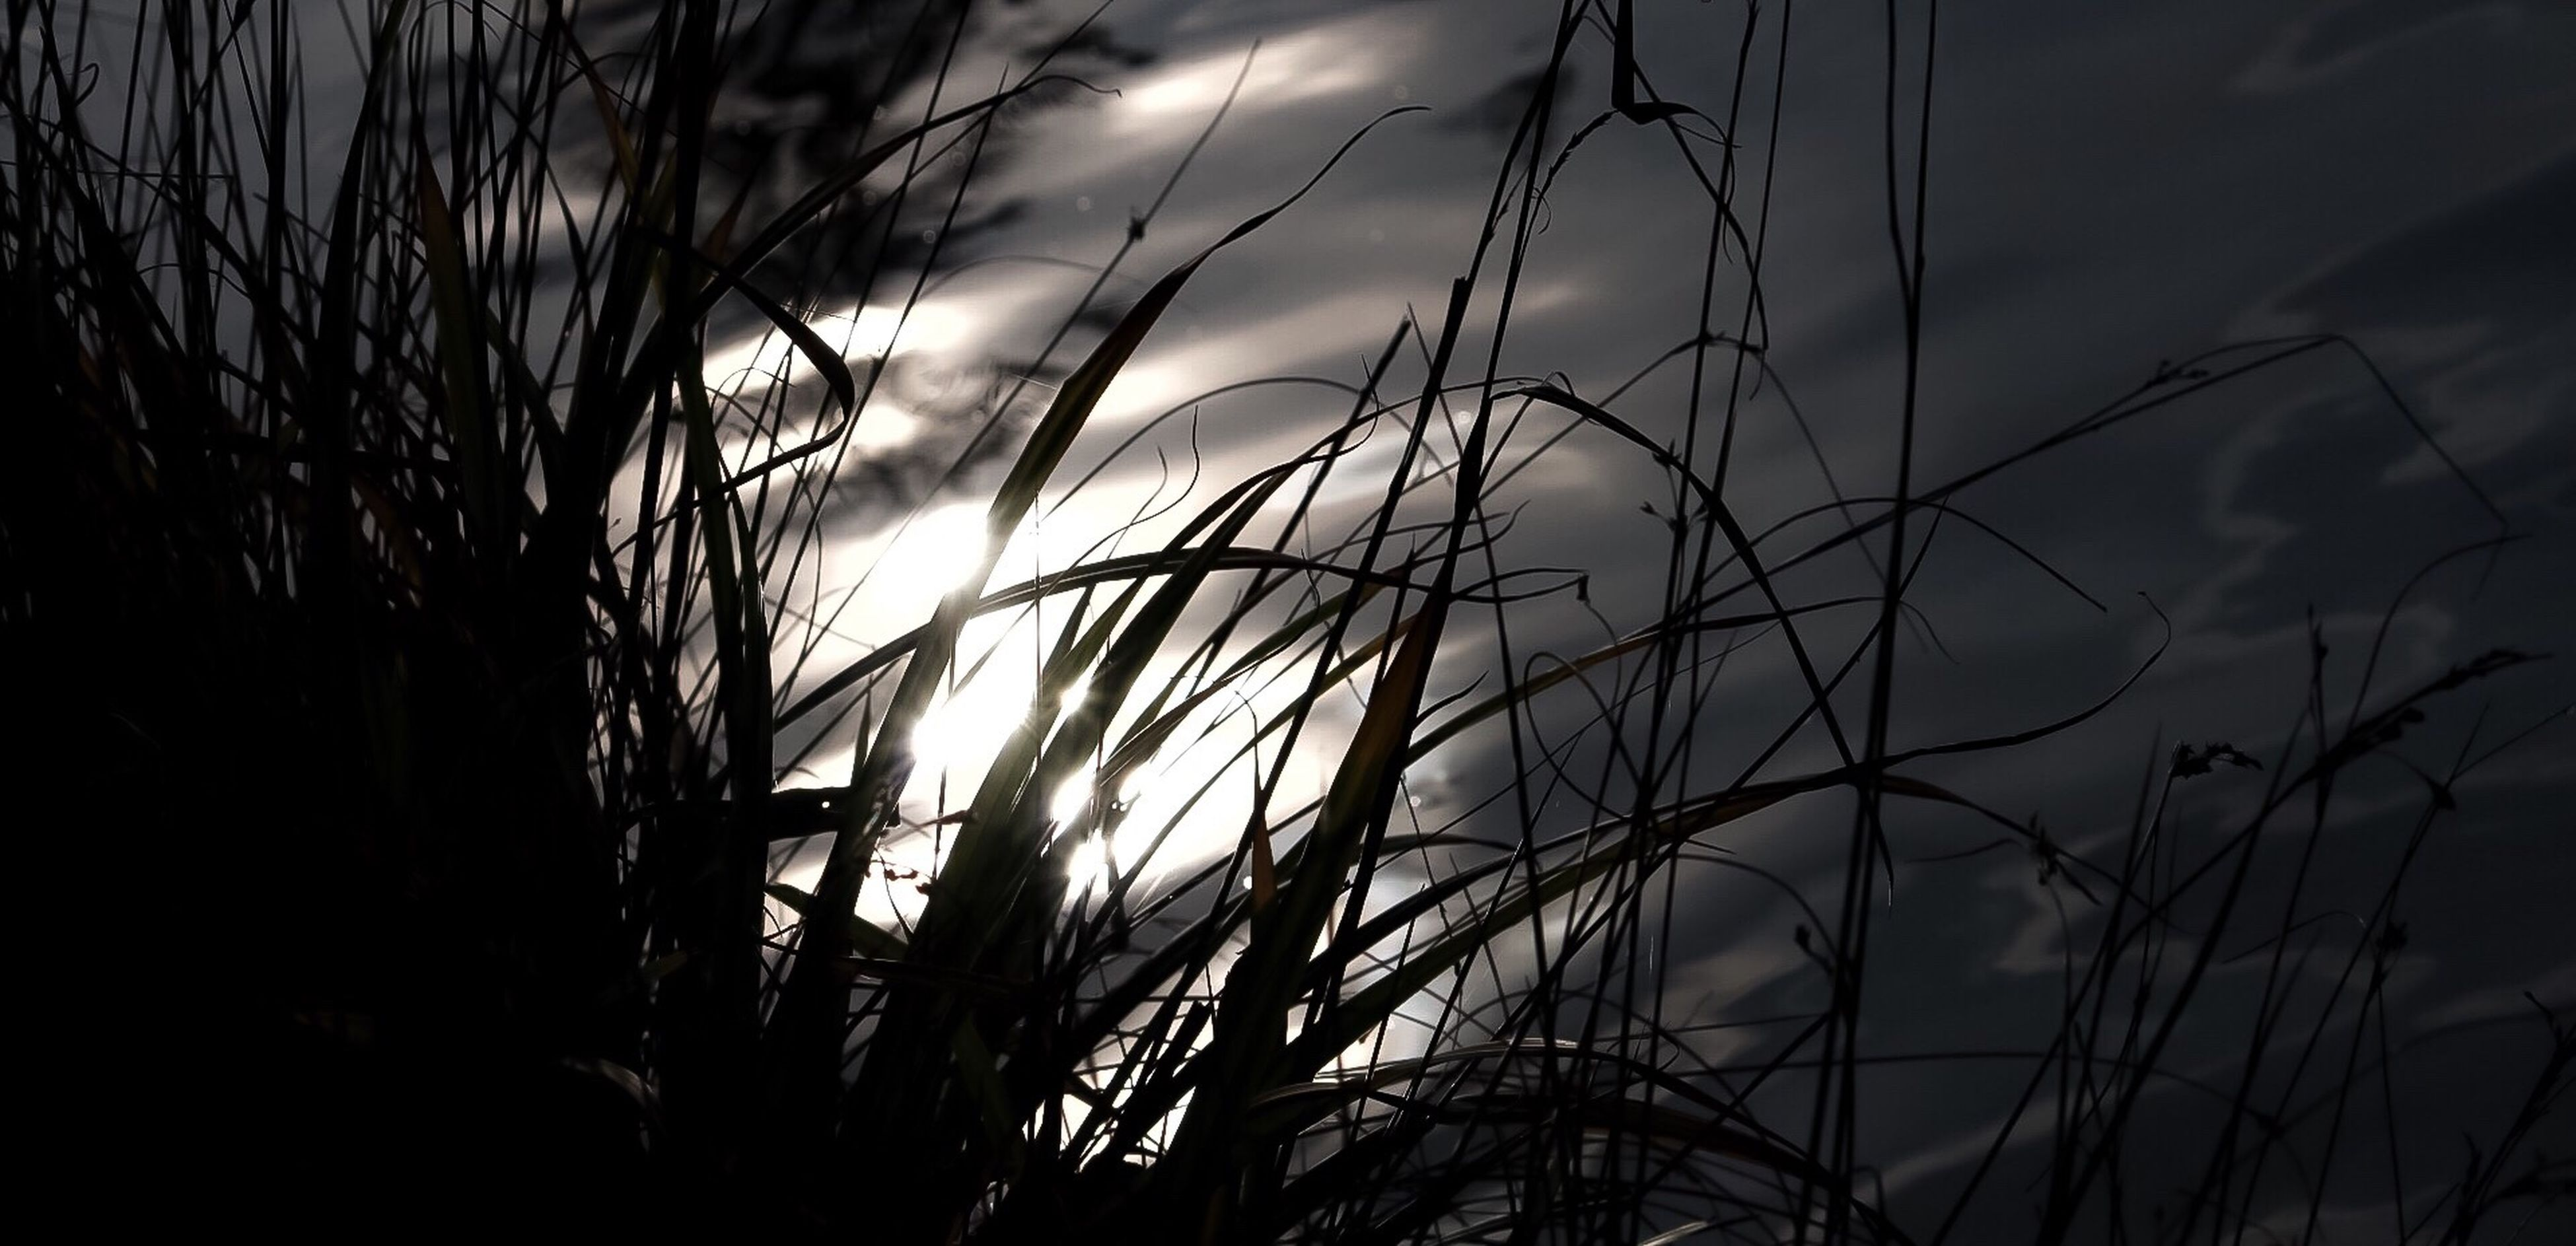 sunset, nature, no people, outdoors, sun, silhouette, sky, close-up, day